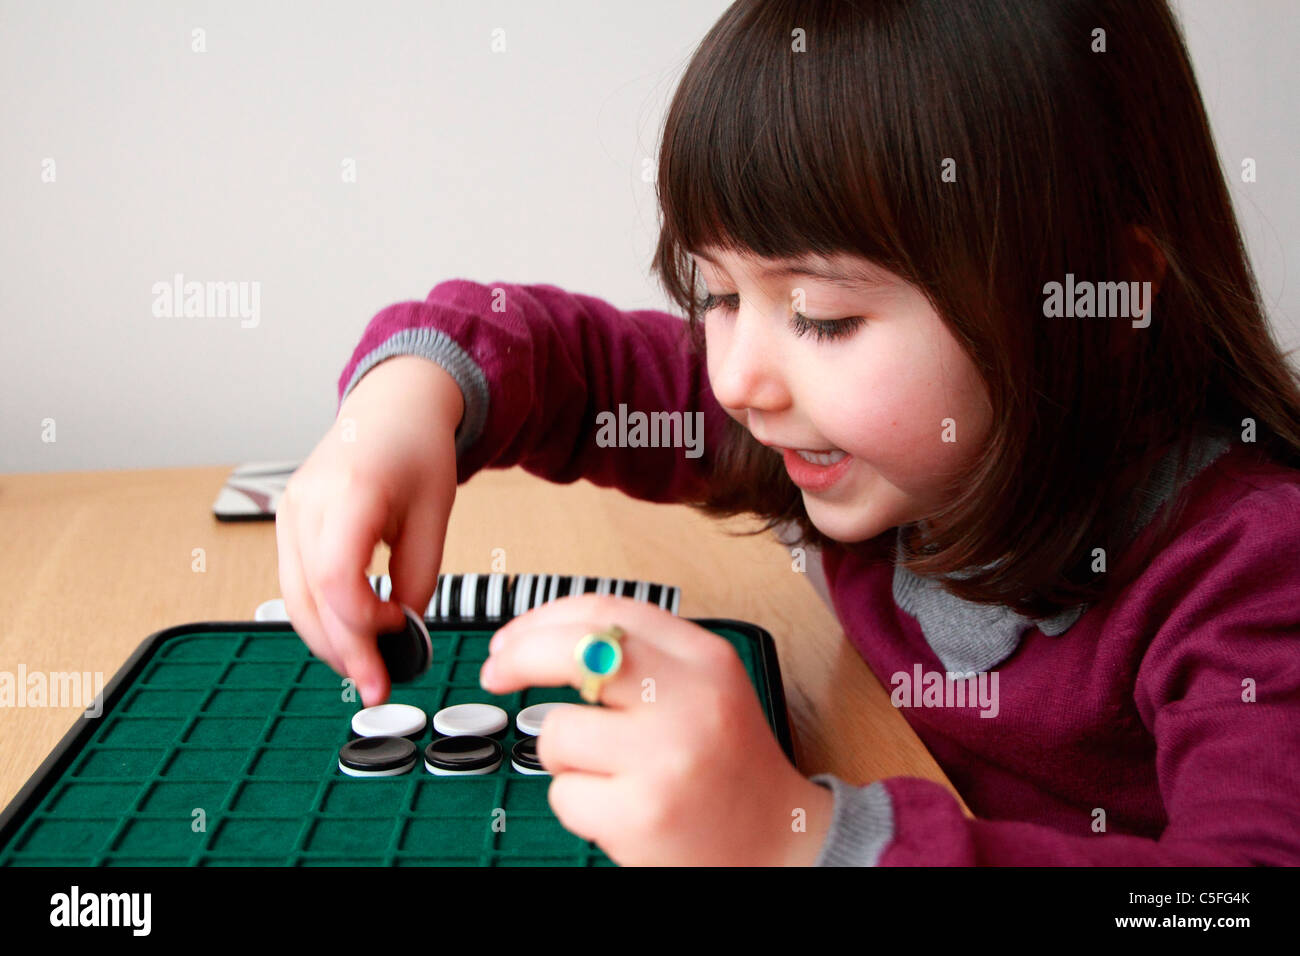 Young girl playing othello - Stock Image